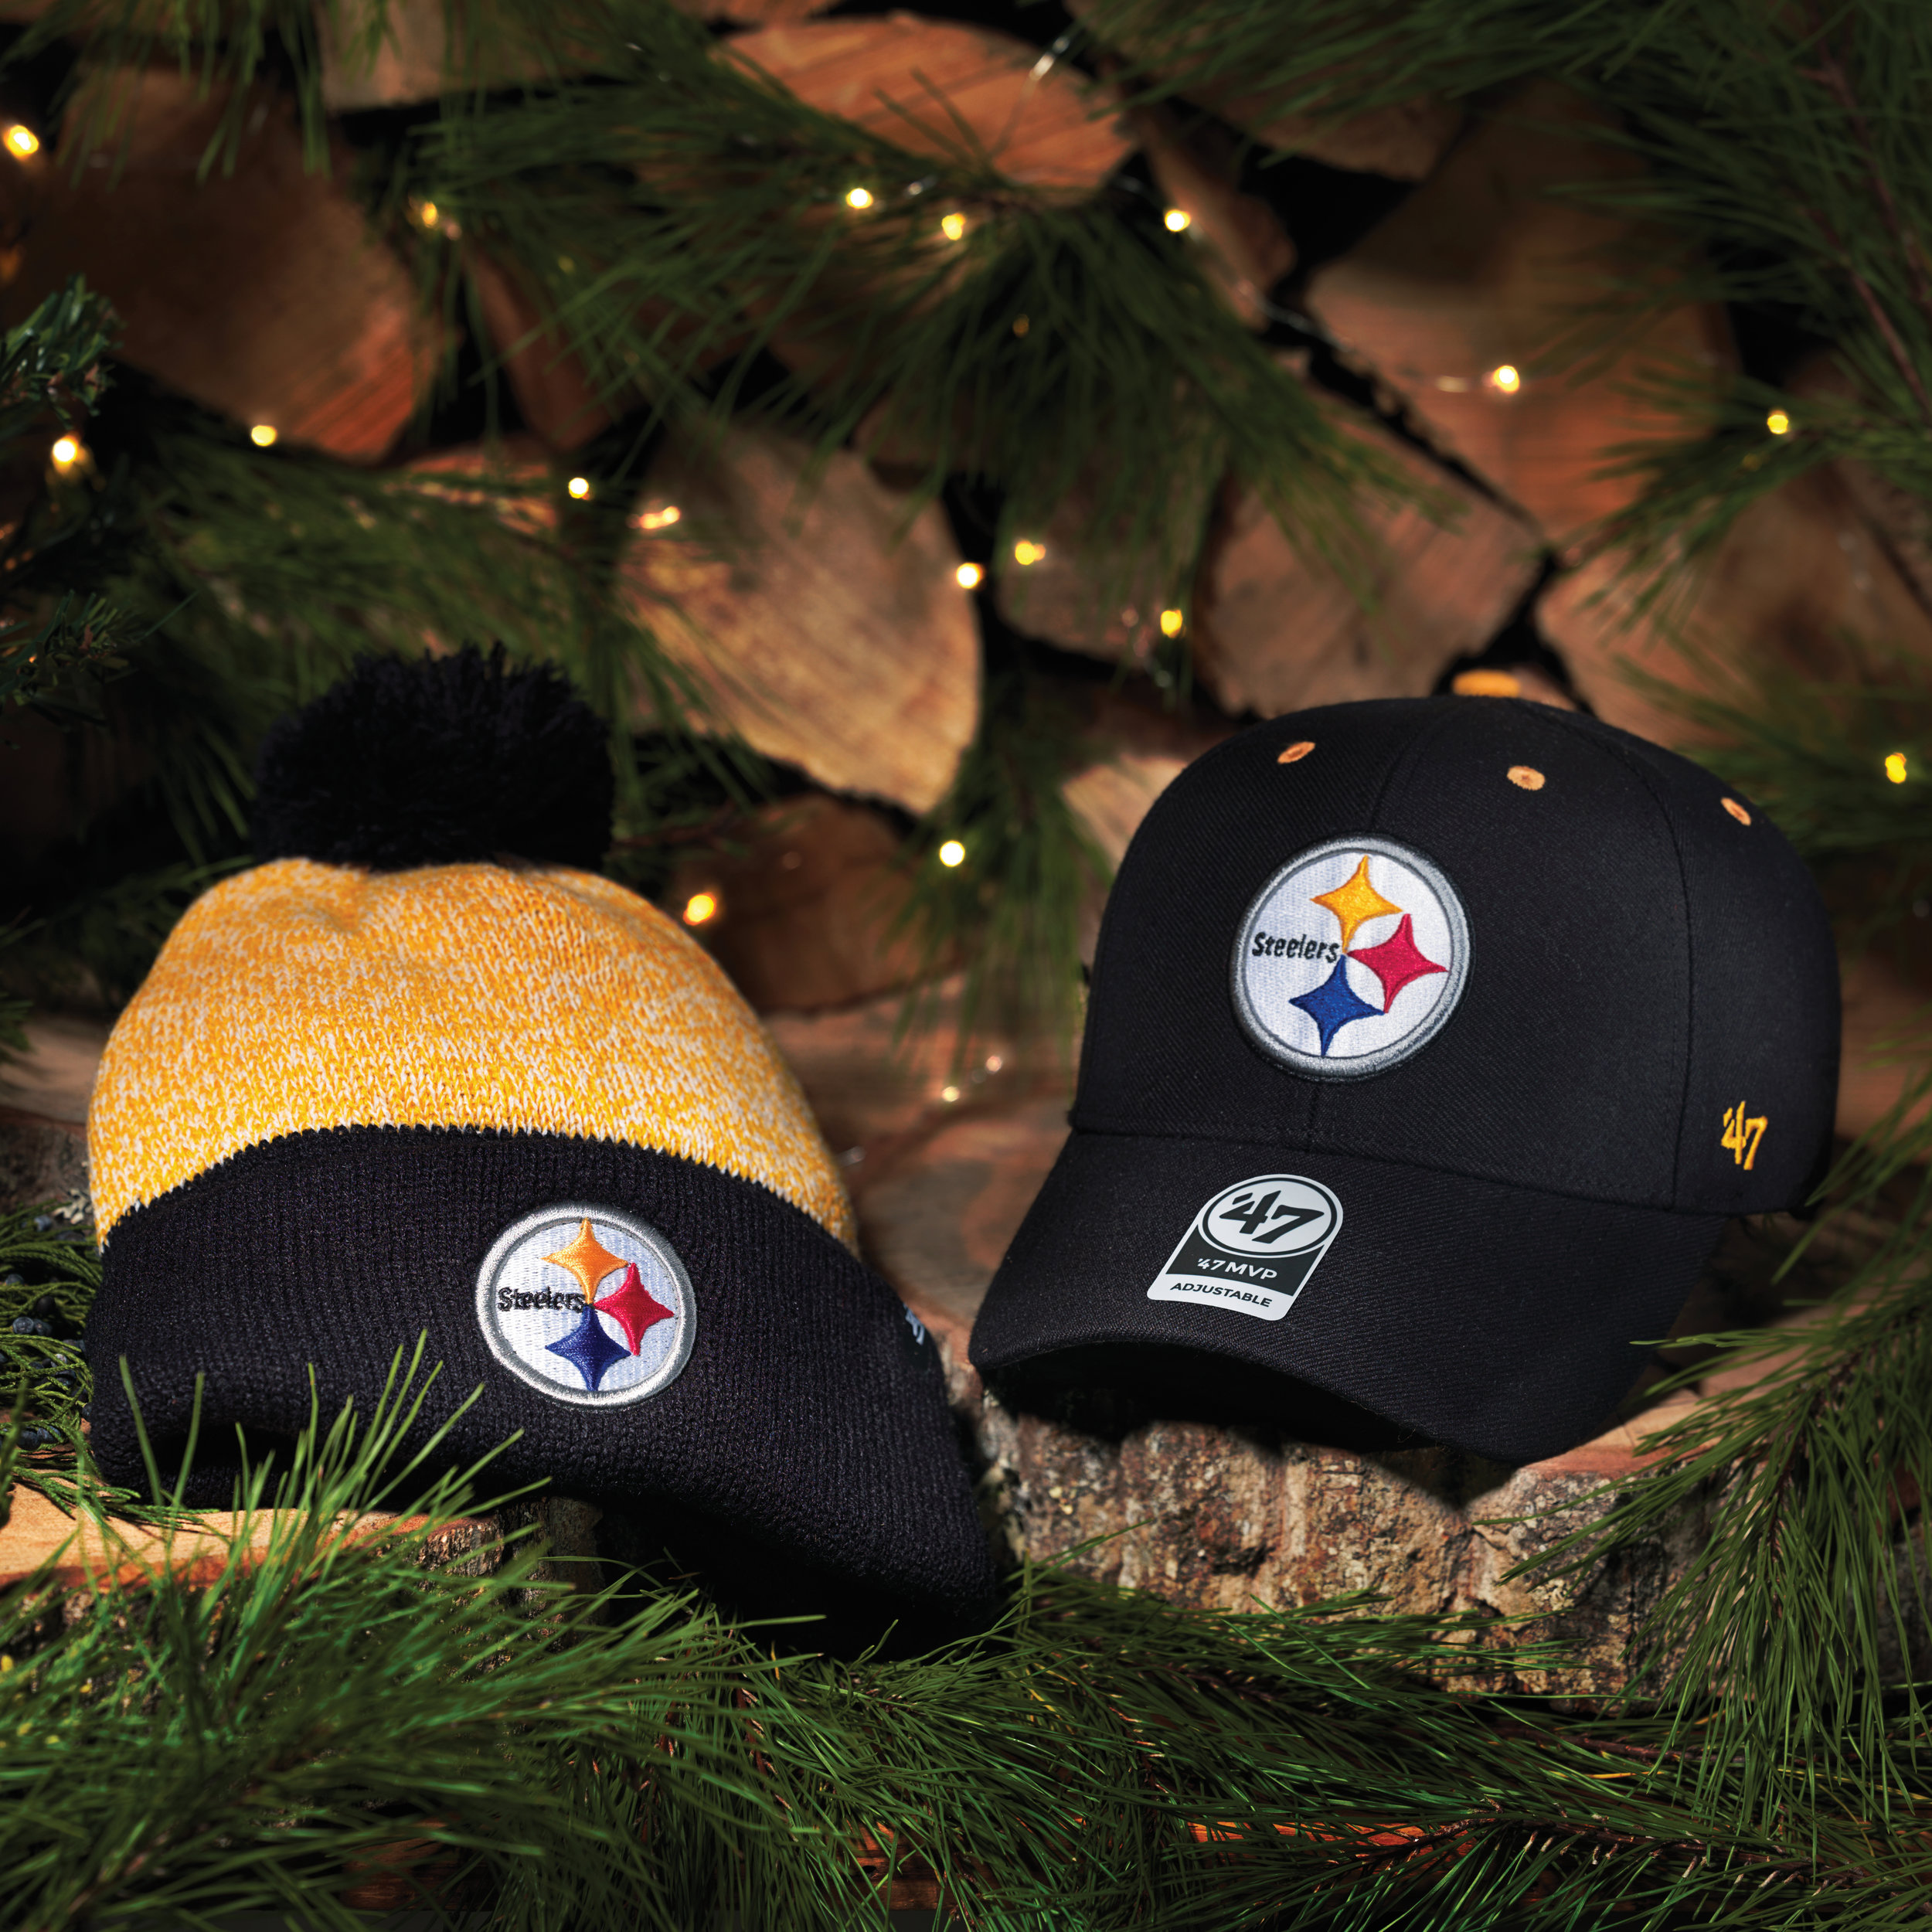 12_Steelers_MVP_Knit_Hero_1217_FINAL_RGB_SocialSquare.jpg